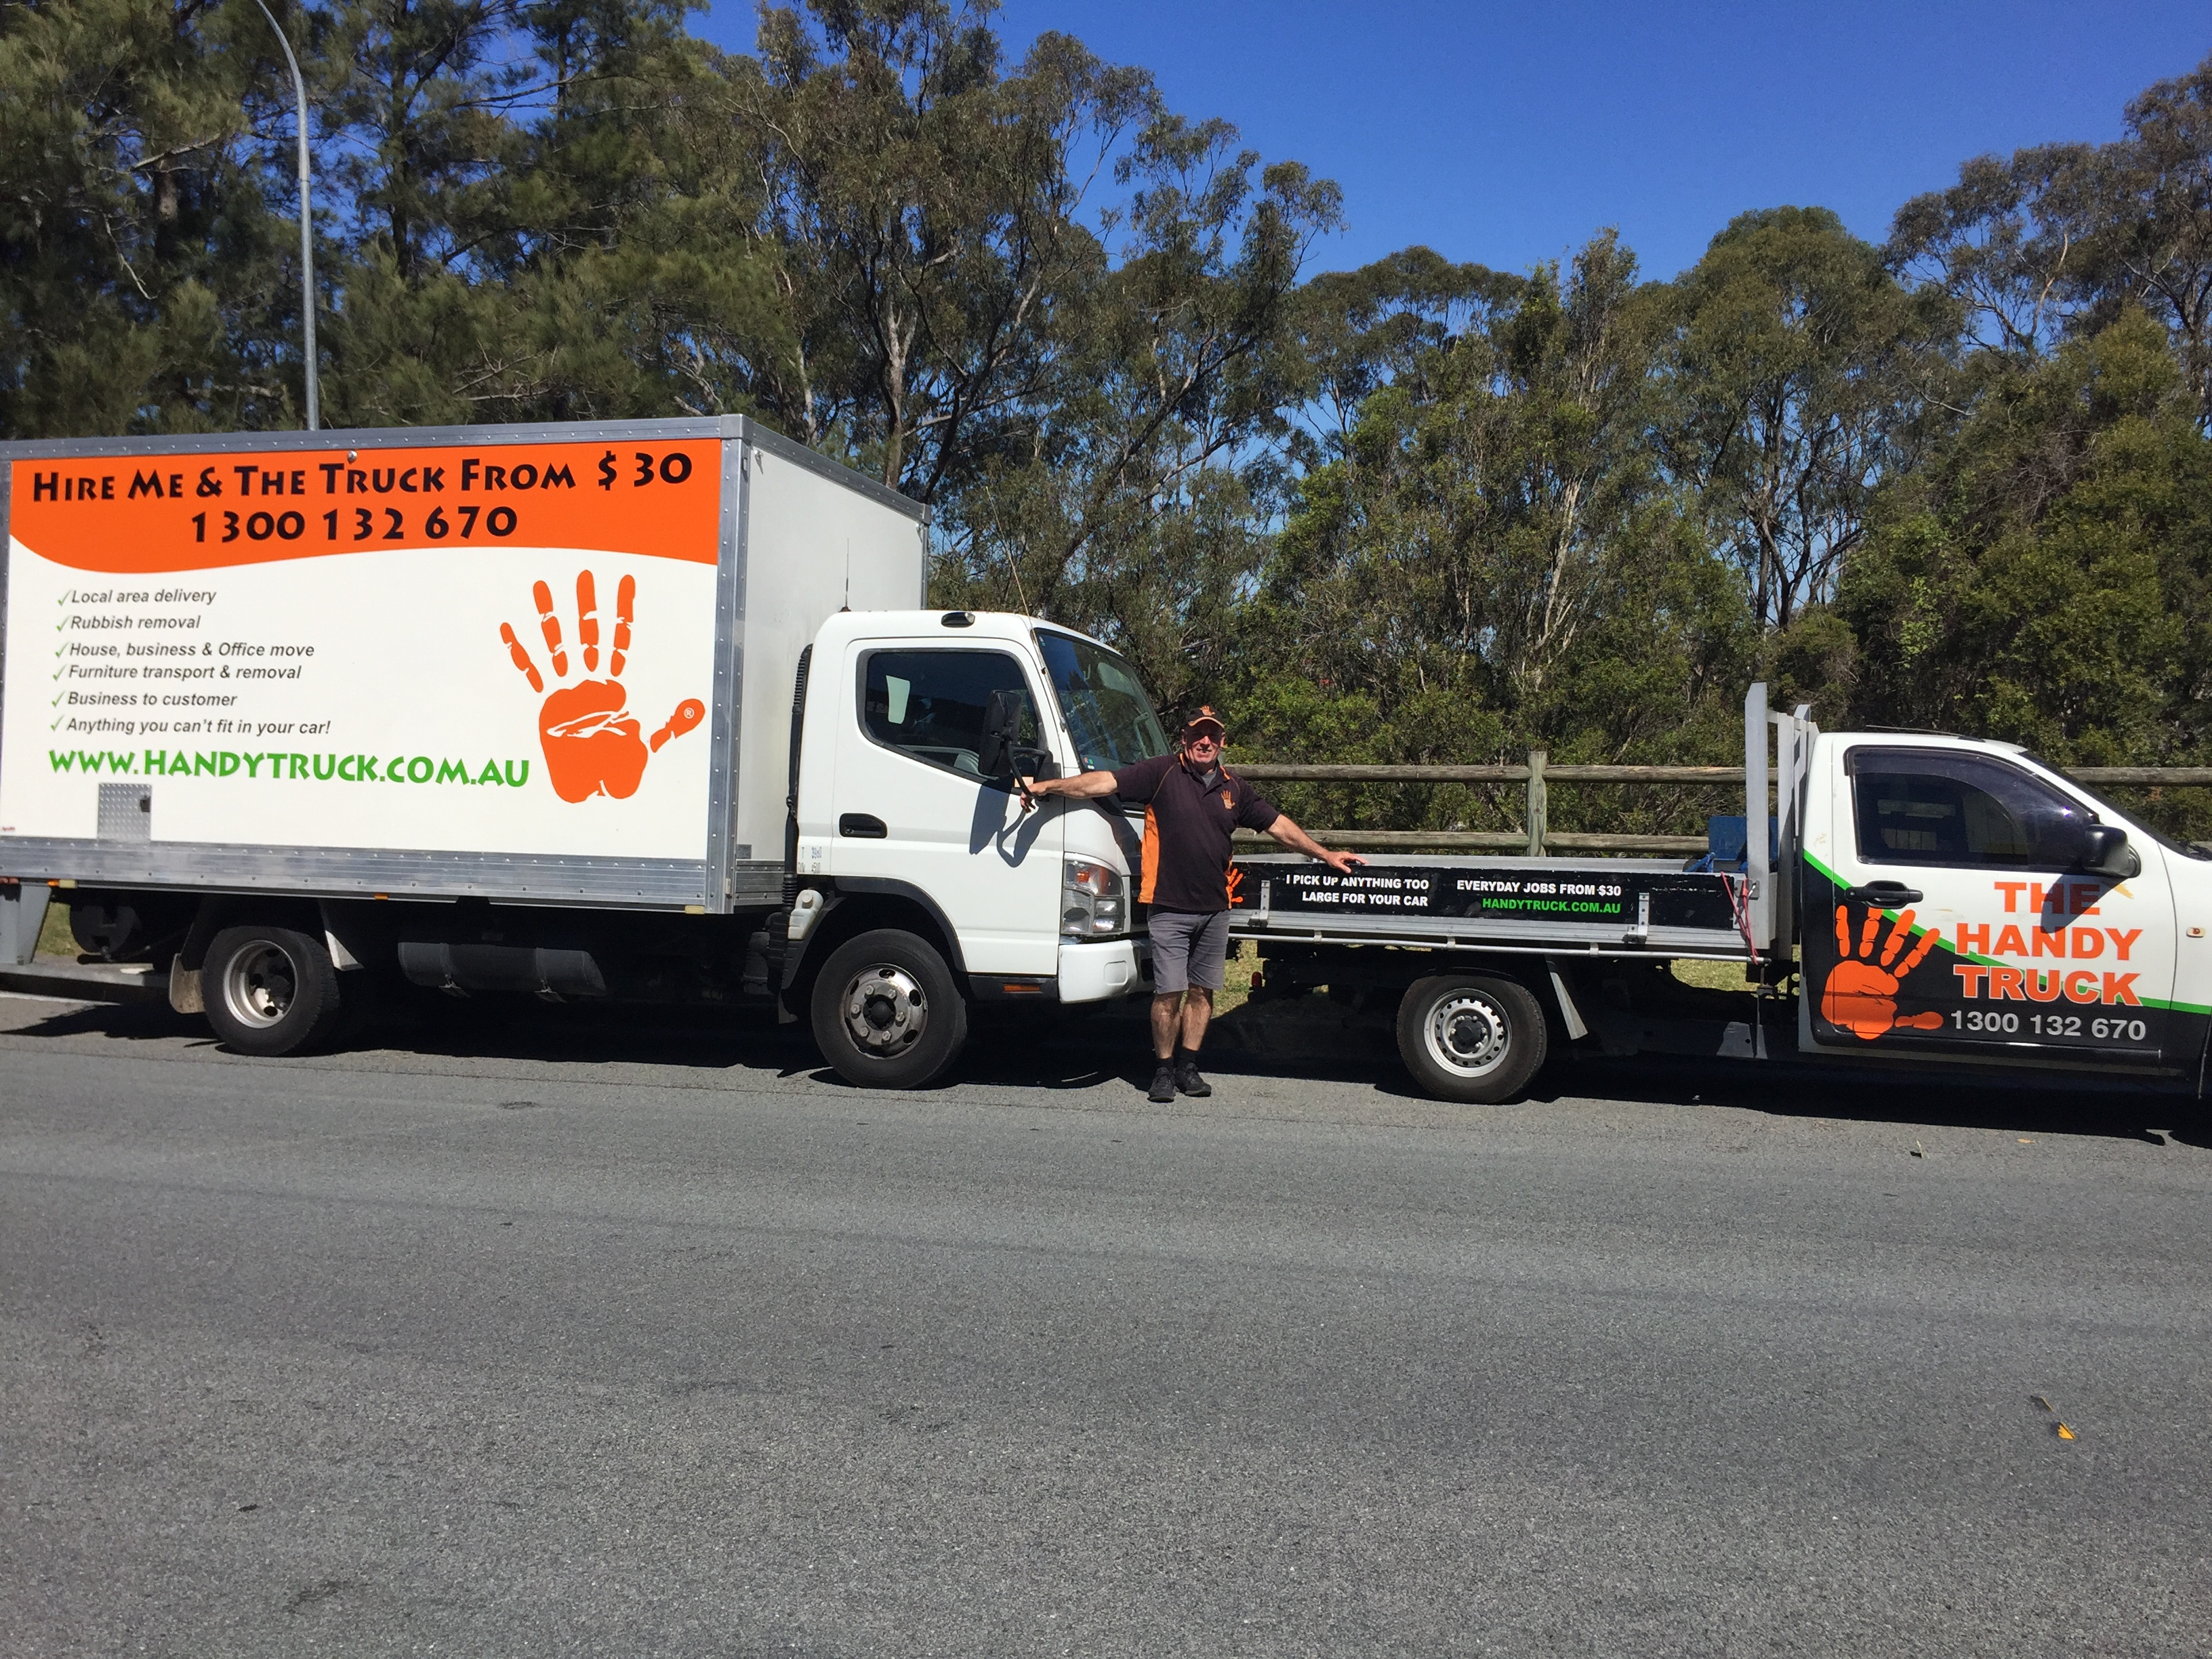 Your delivery and removalist service in North Brisbane